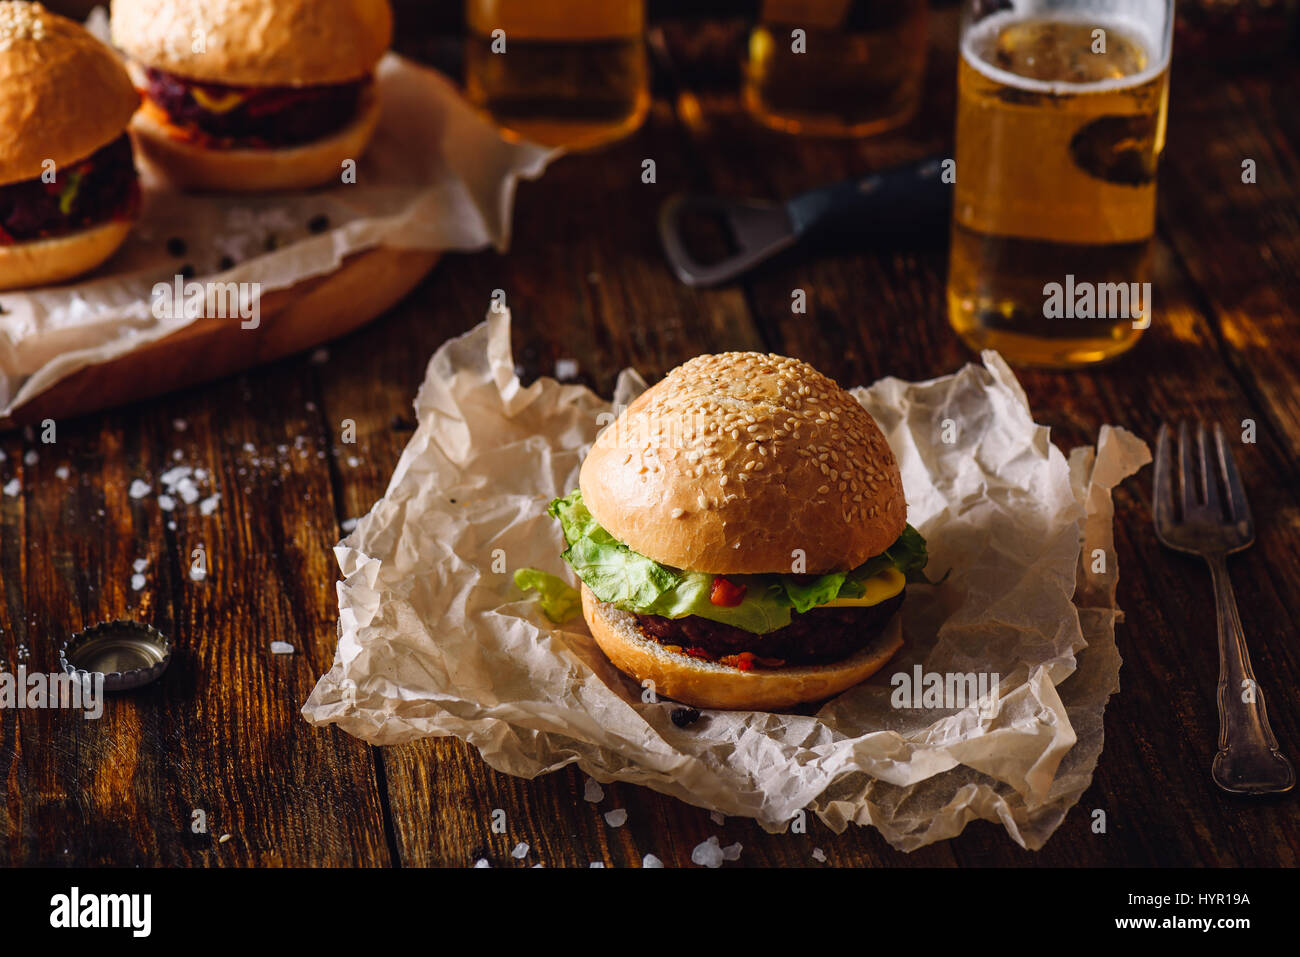 Homemade Burger with Beer. - Stock Image